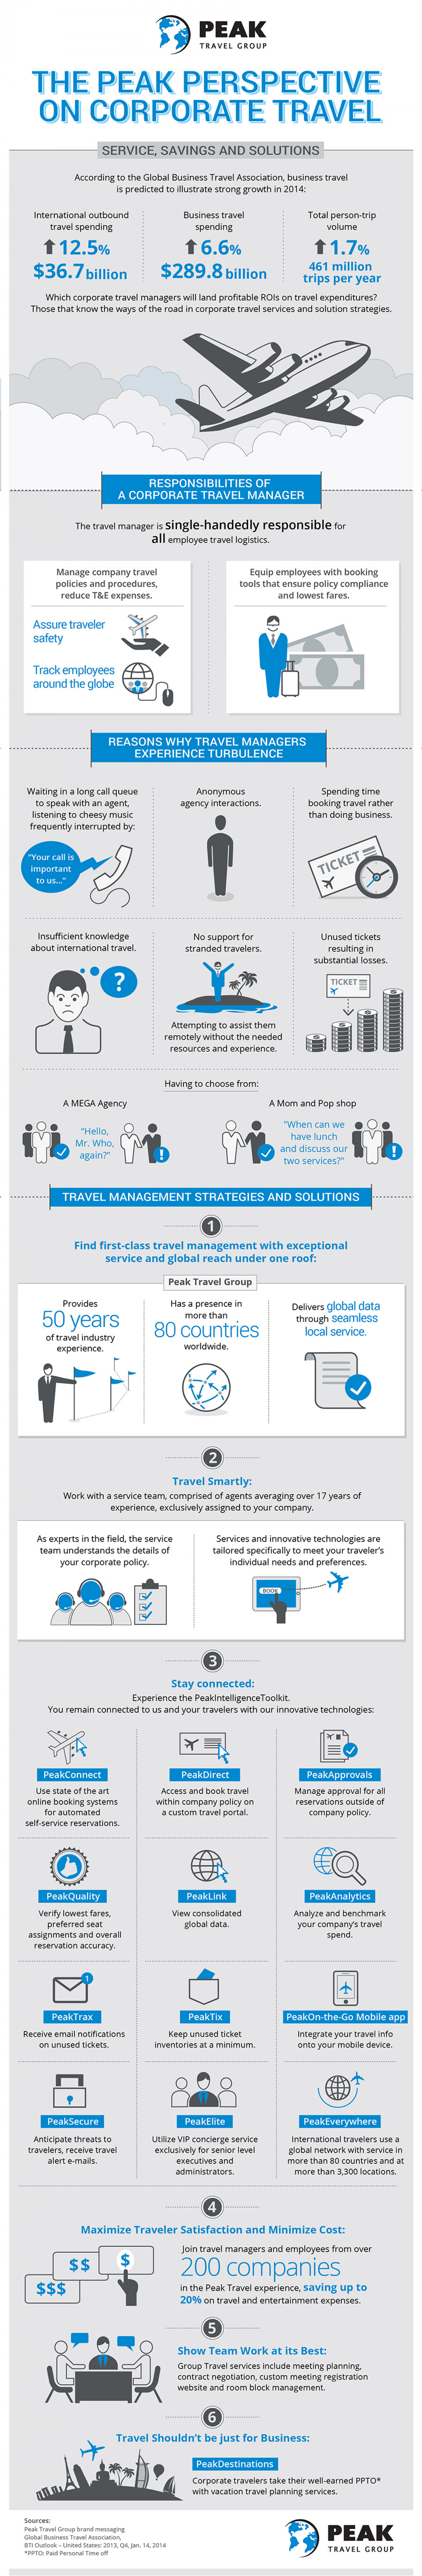 The Peak Perspective on Corporate Travel Infographic